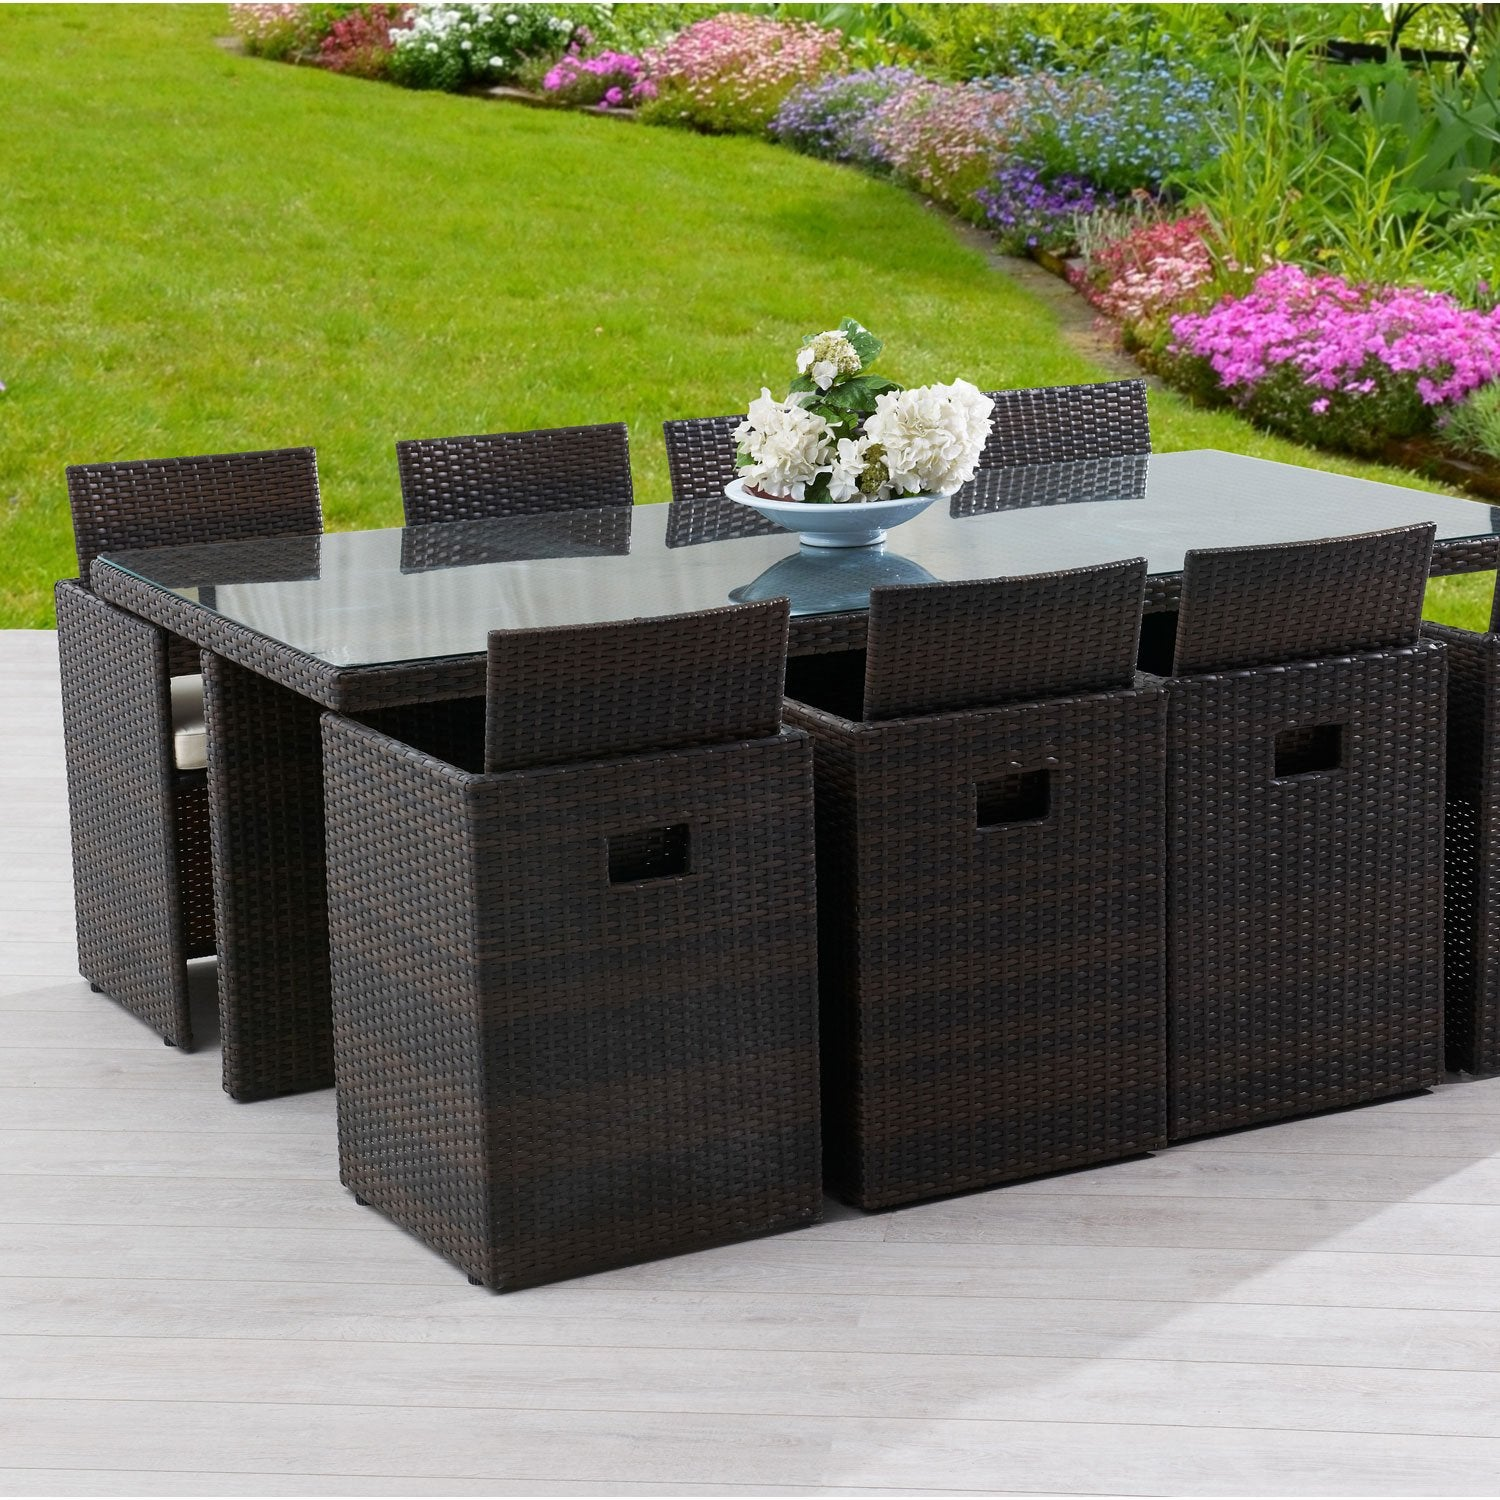 Salon de jardin encastrable r sine tress e marron 1 table for Soldes mobilier